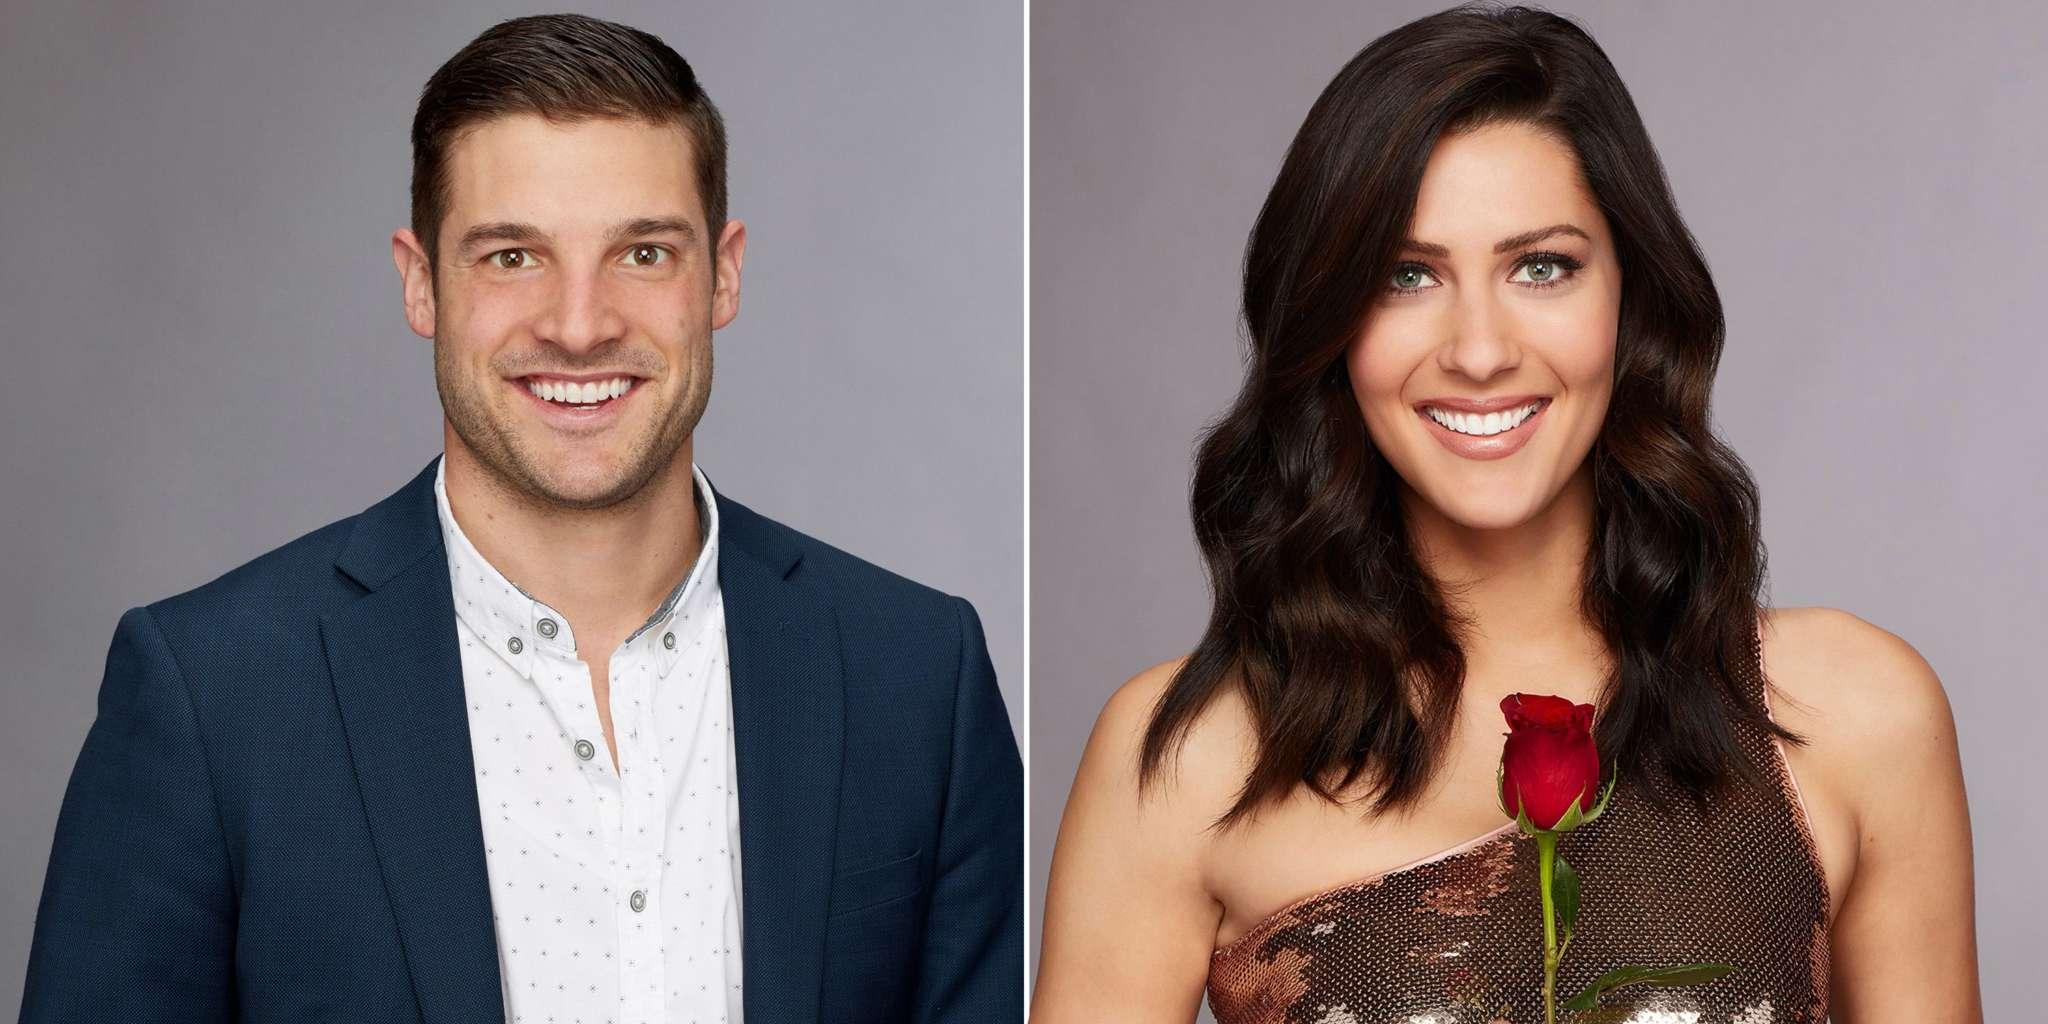 Becca Kufrin Says She's Been 'Finding The Light' Amid Garrett Yrigoyen Split Reports And Fans Are Sure This Is About Him!